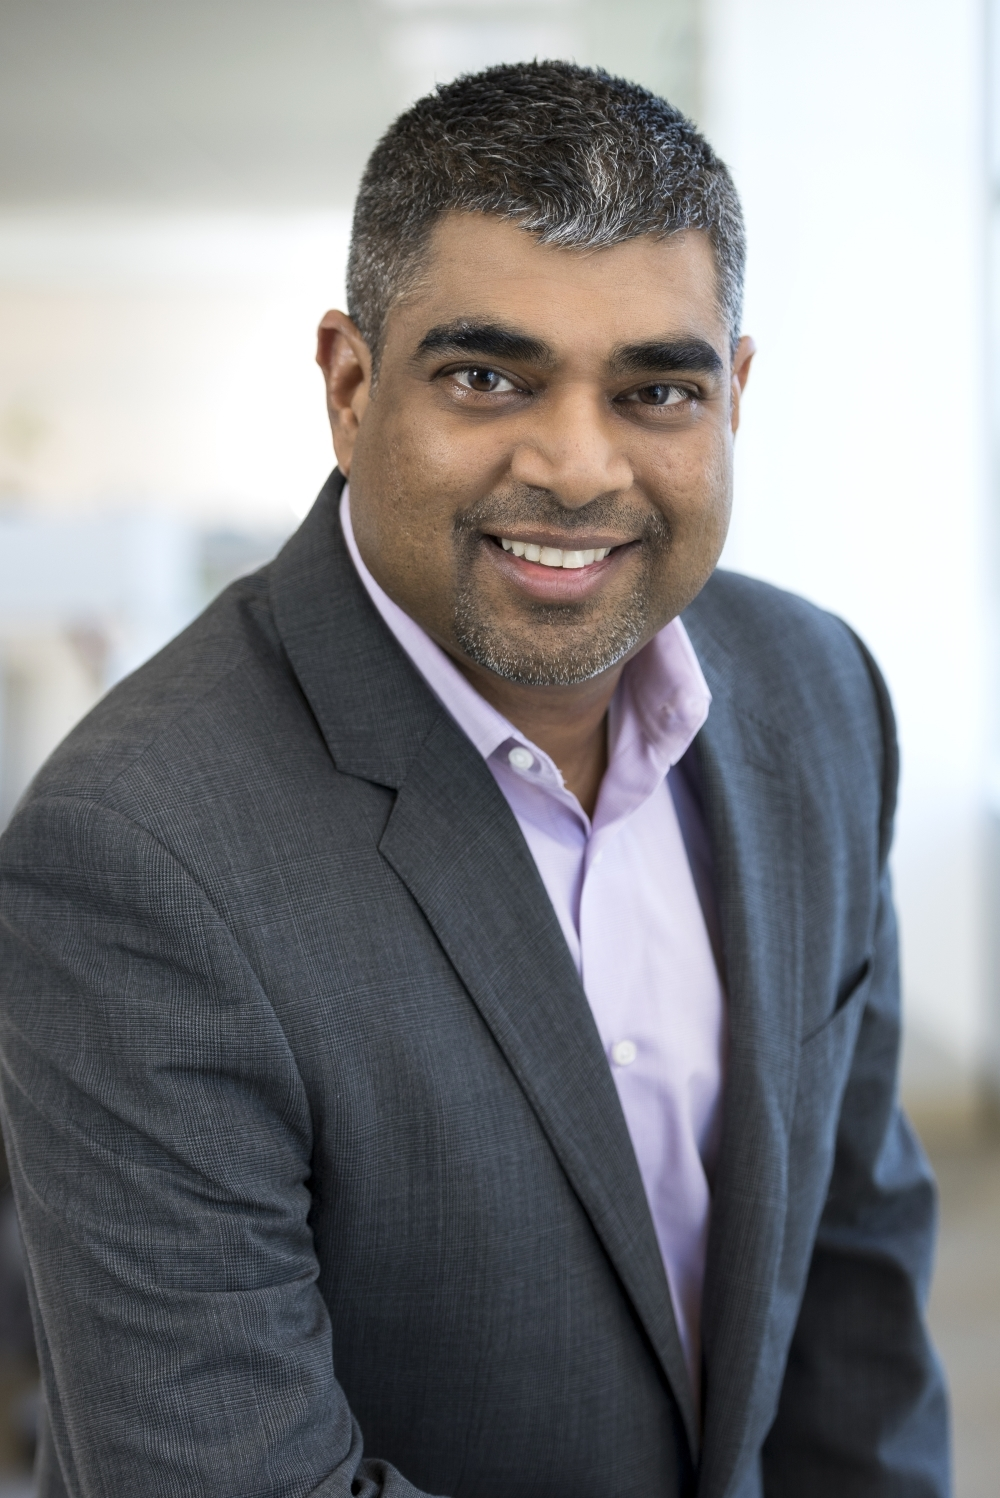 Anil Nanduri is a vice president and general manager of unmanned aviation systems in the Perceptual Computing Group at Intel Corporation.